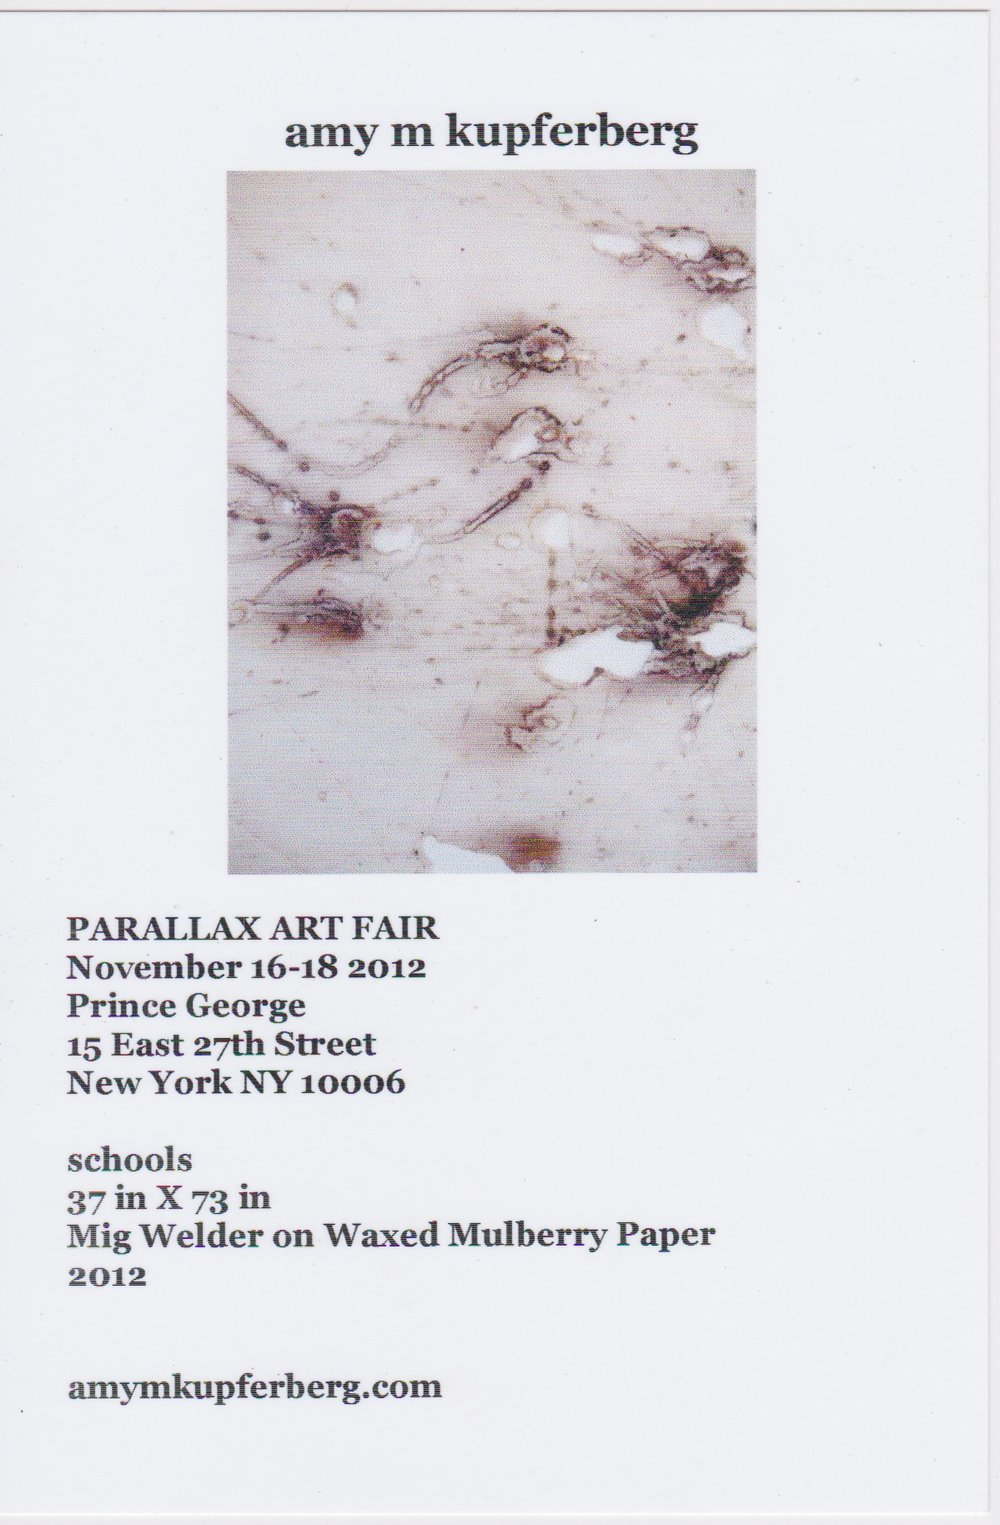 parallax art fair 2012.jpg